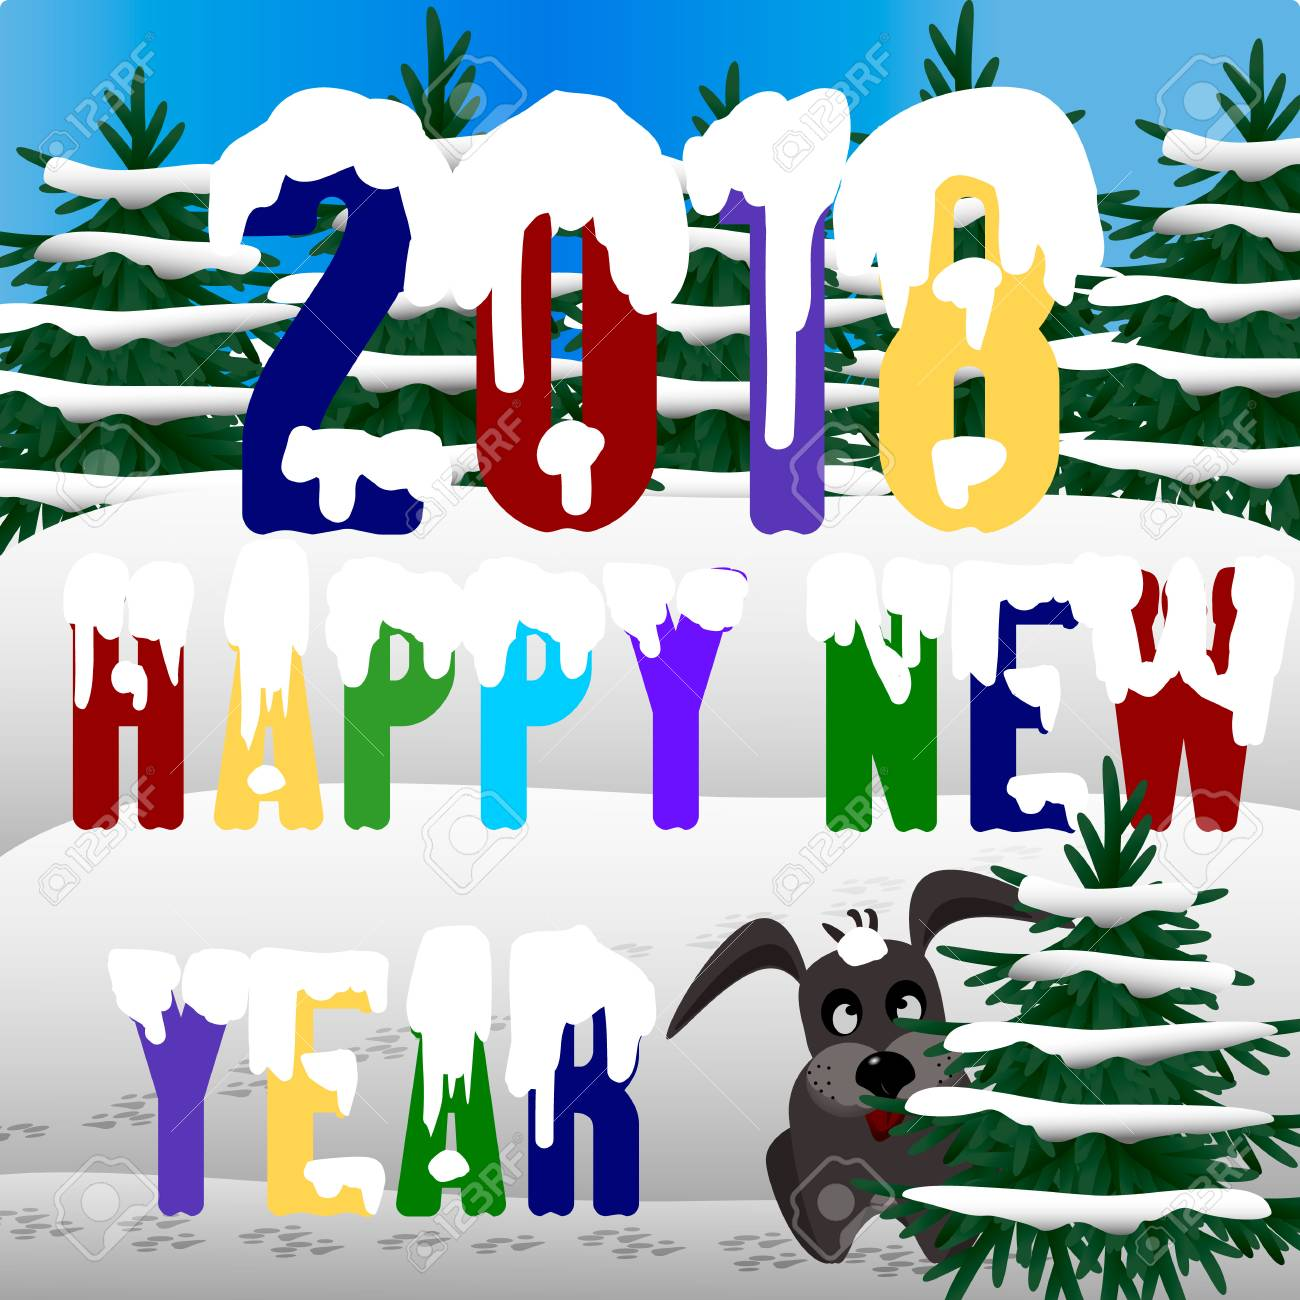 Happy New Year 2018 greeting card design template - 90676065